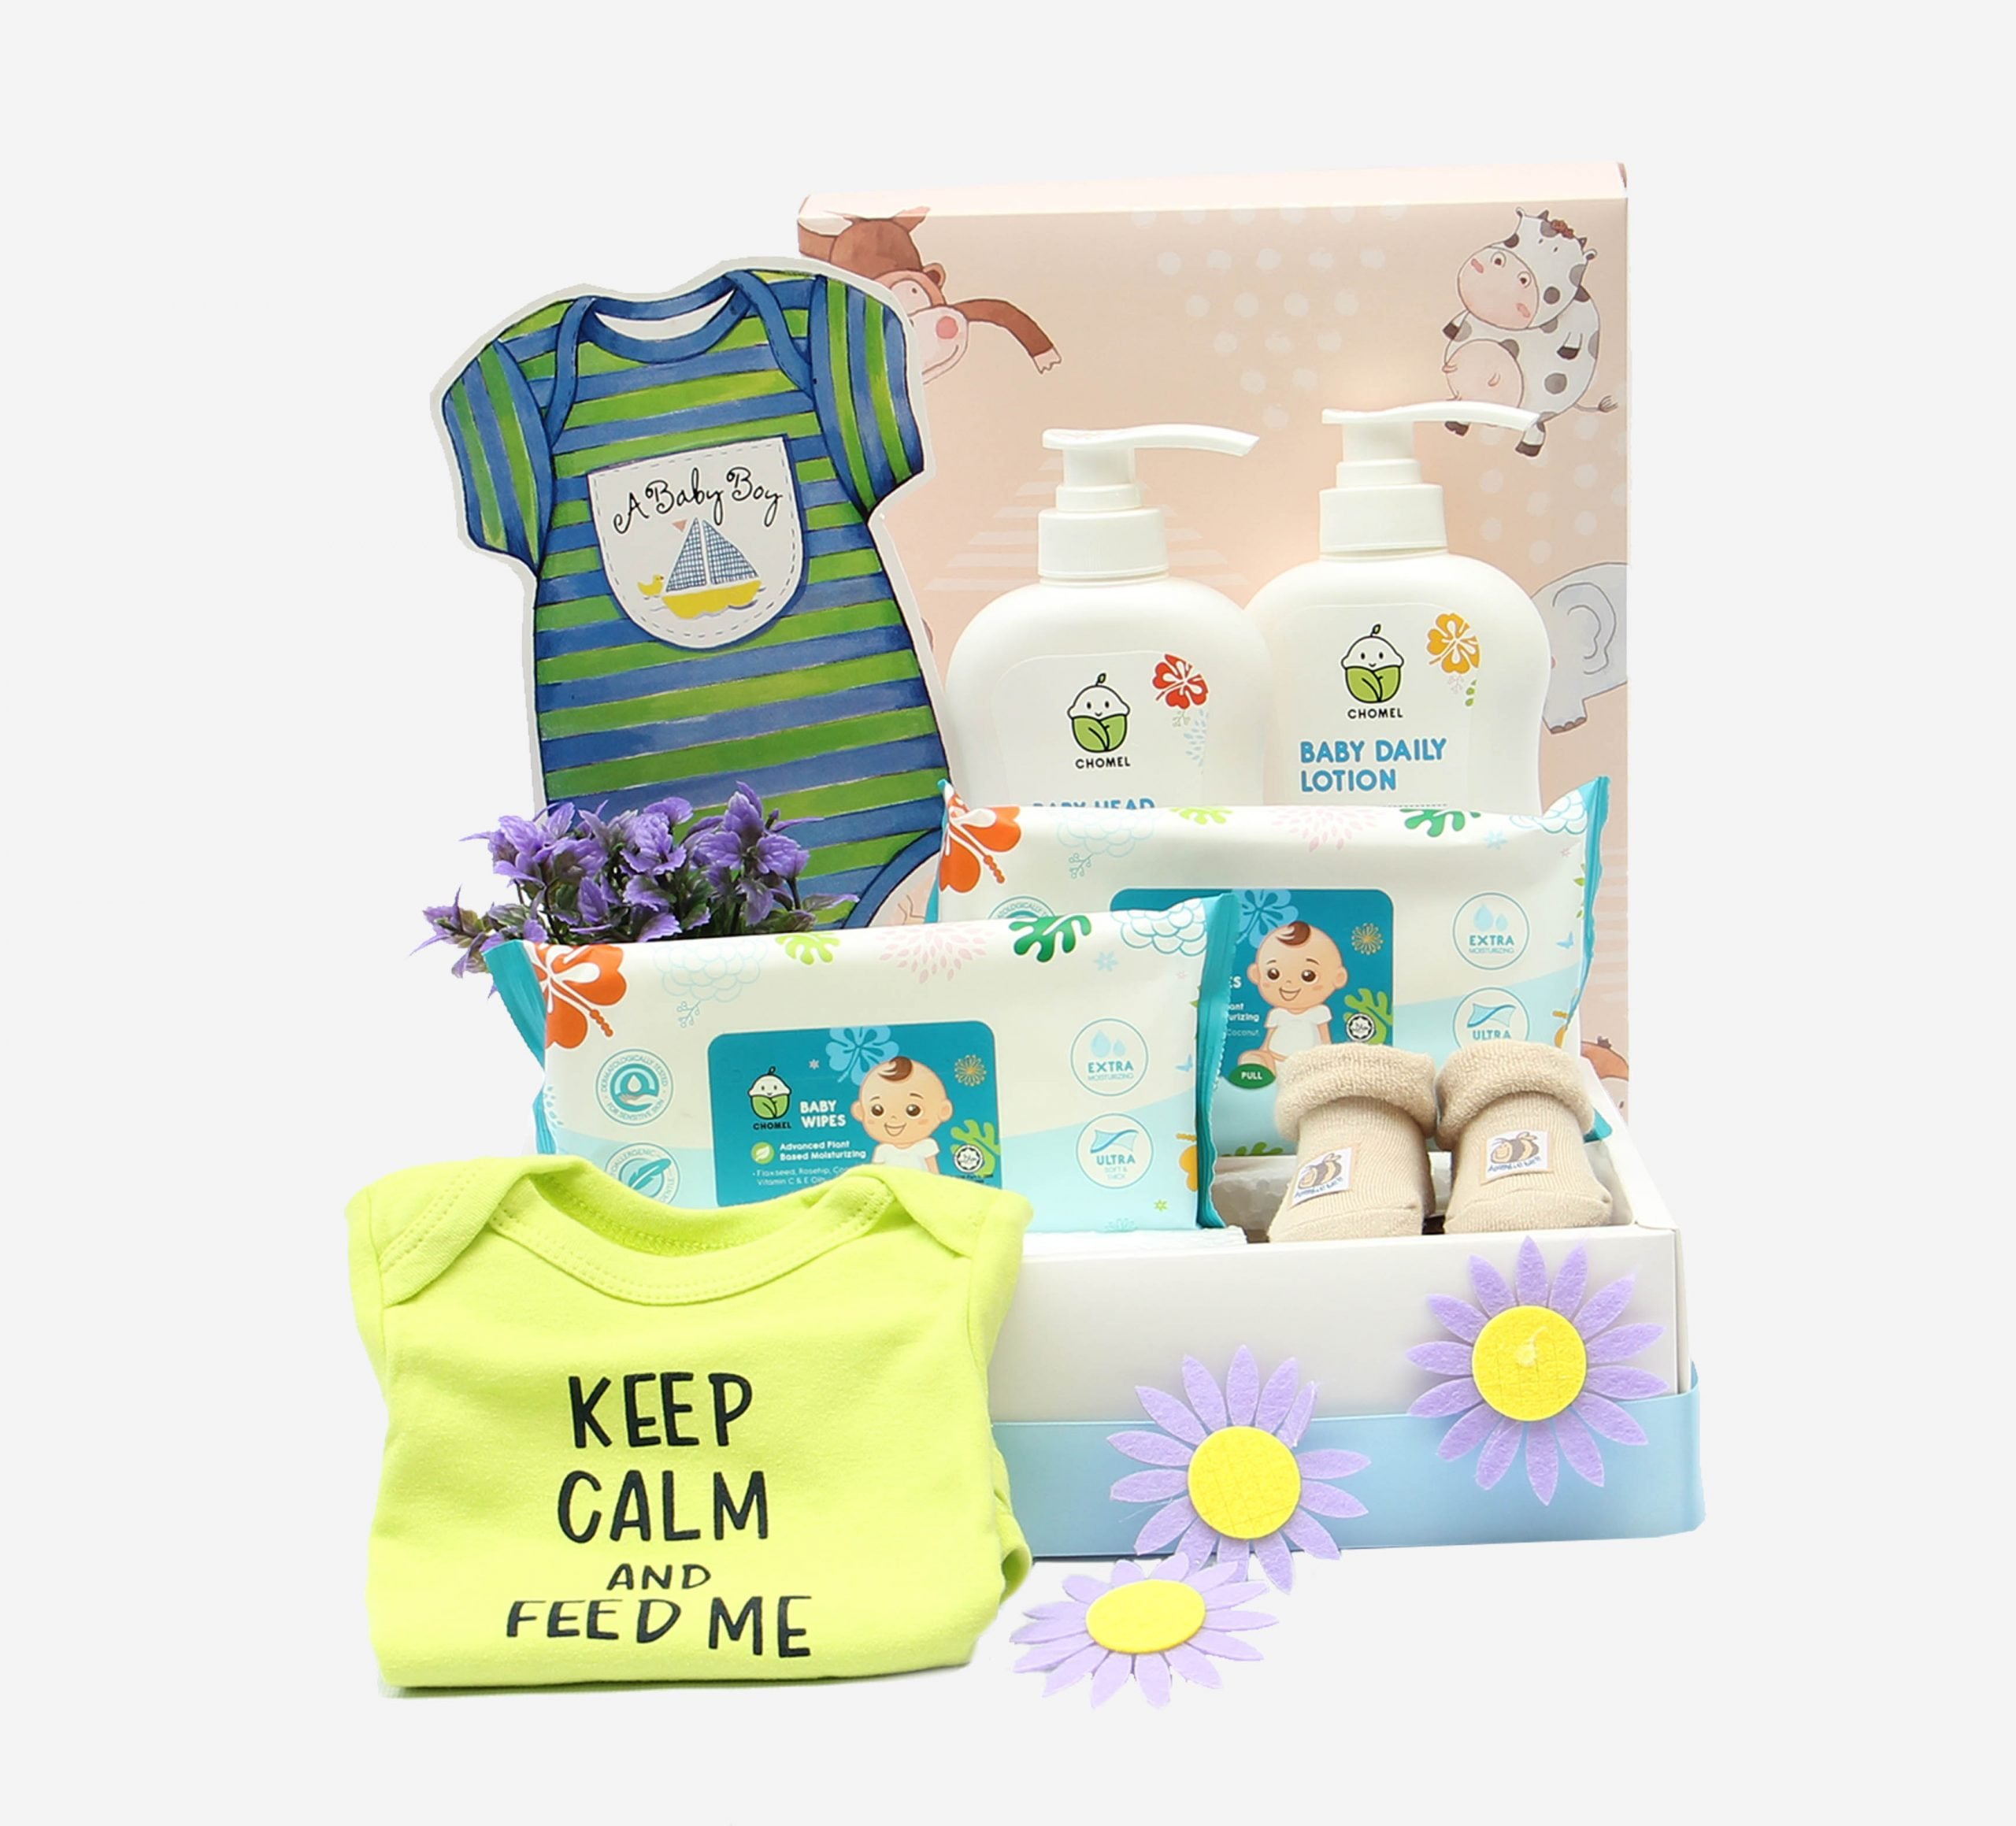 Hello Si Comel | New born baby gifts | Eska Creative Gifting